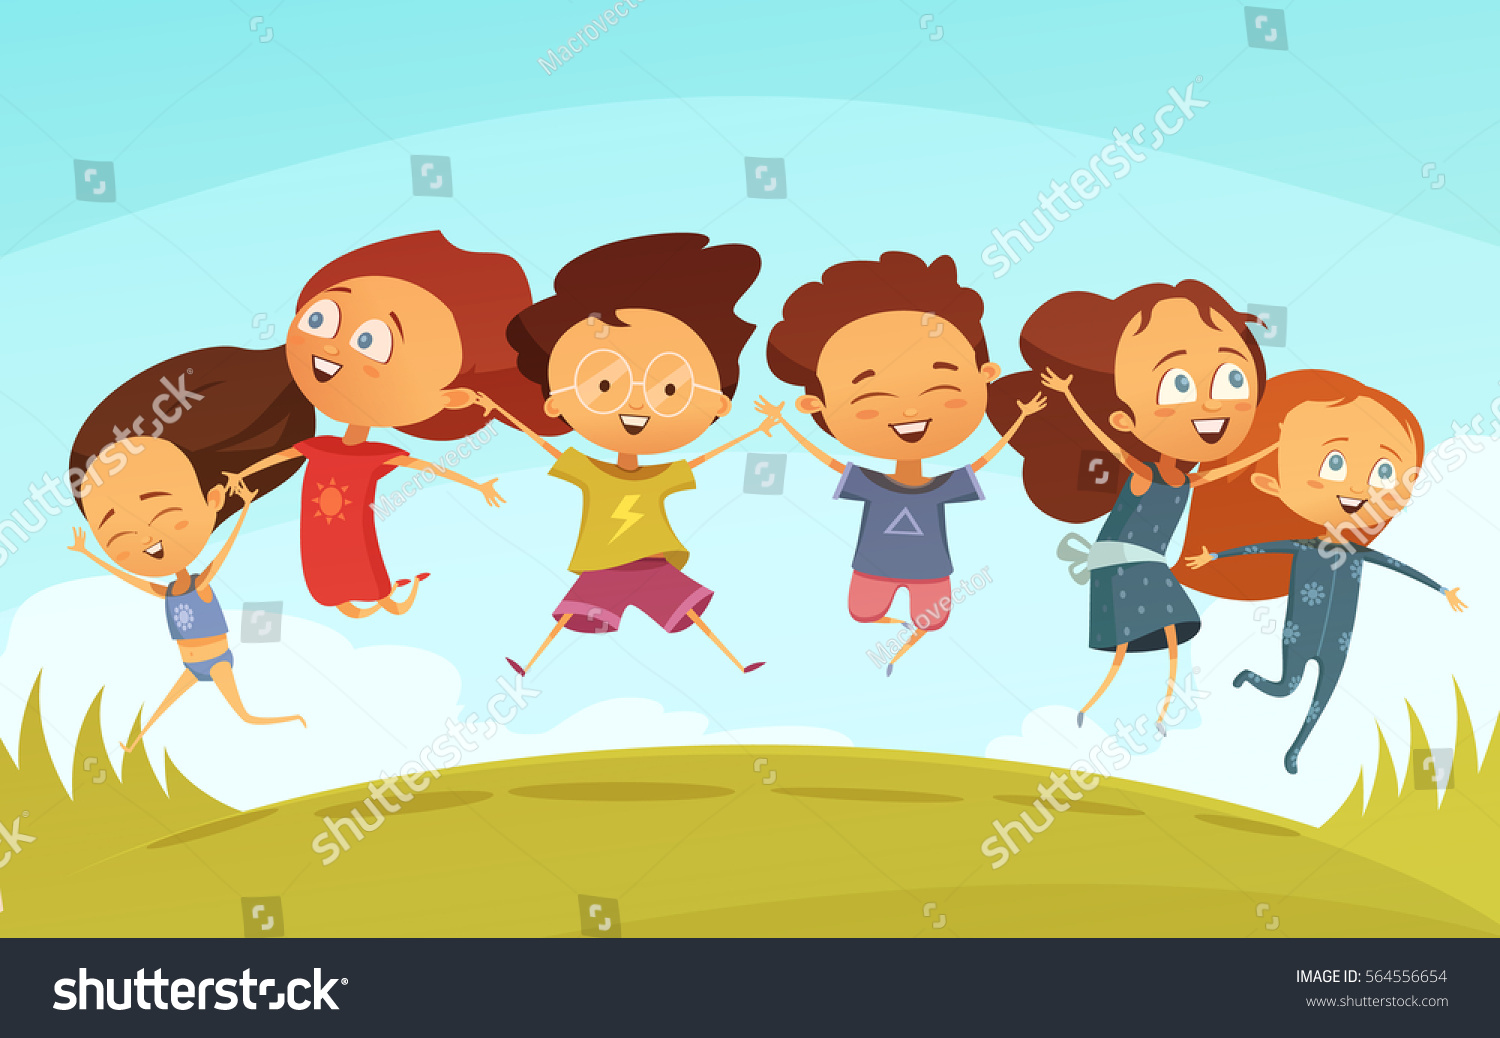 Cartoon Team Cheerful Friends Holding Hands Stock Vector